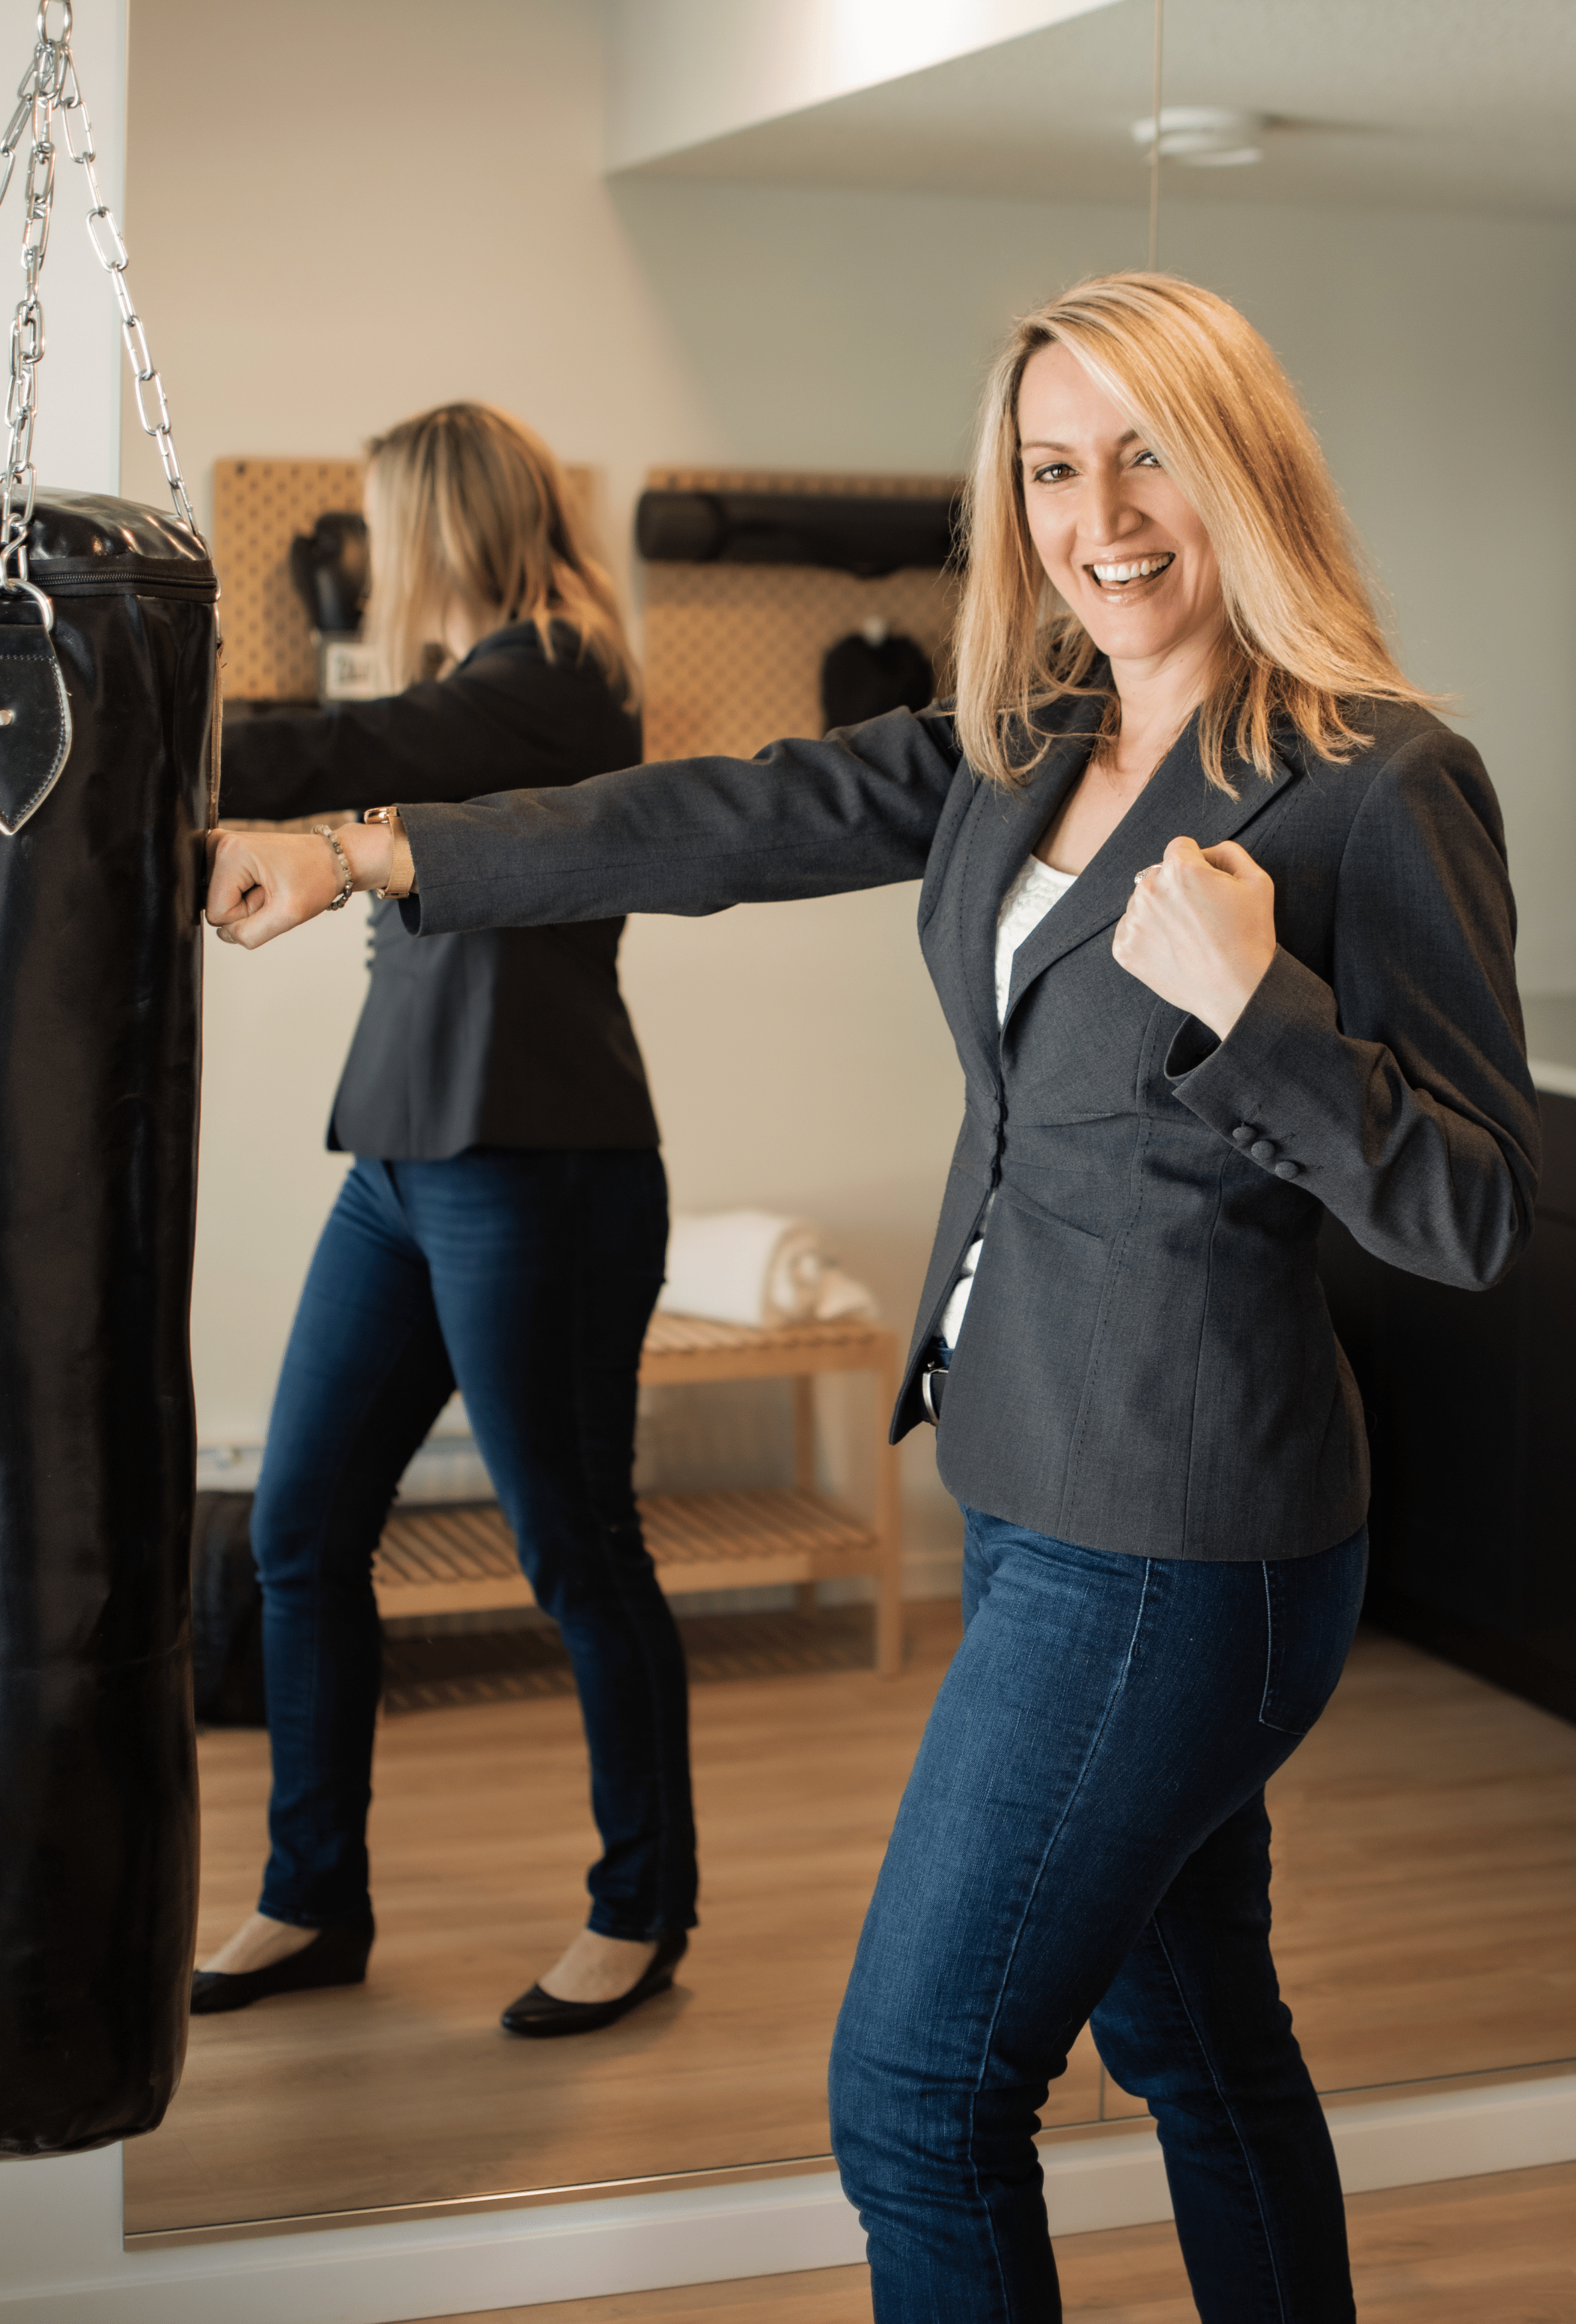 Julie Anthony, CEO/Chief Disruptor